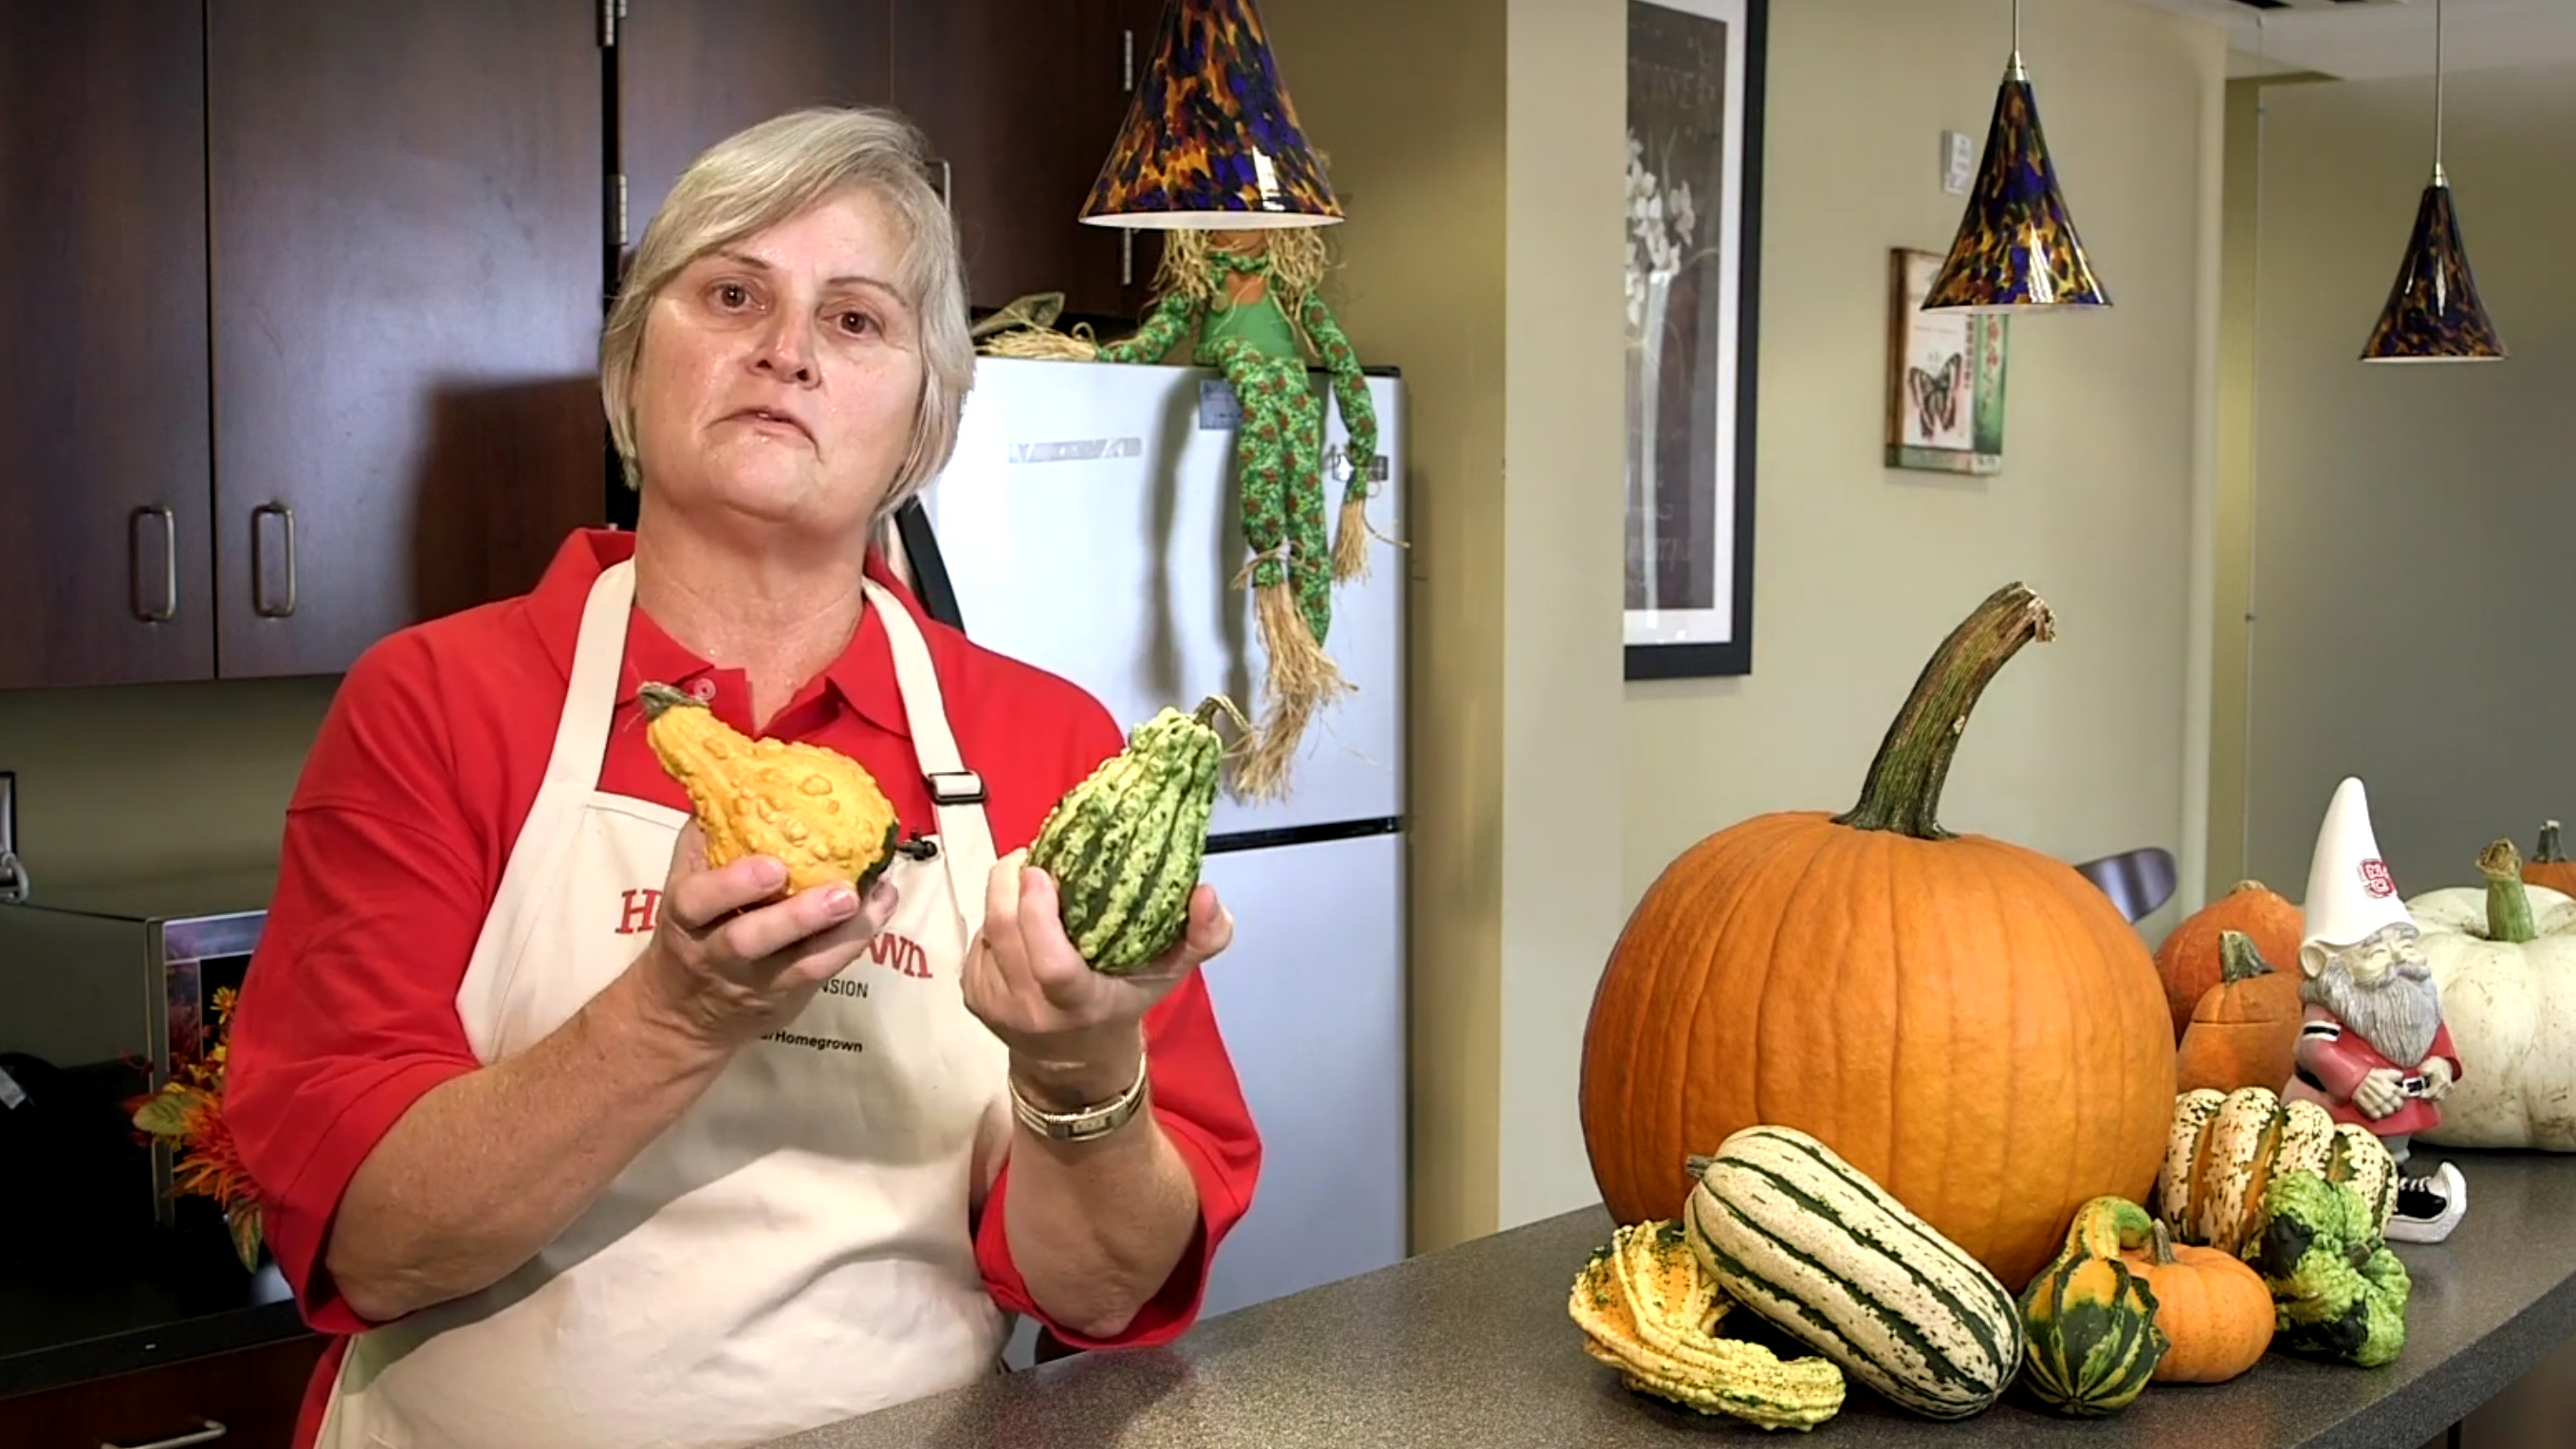 A woman is holding two gourds while standing in a kitchen, with a selection of other colorful gourds on the counter.